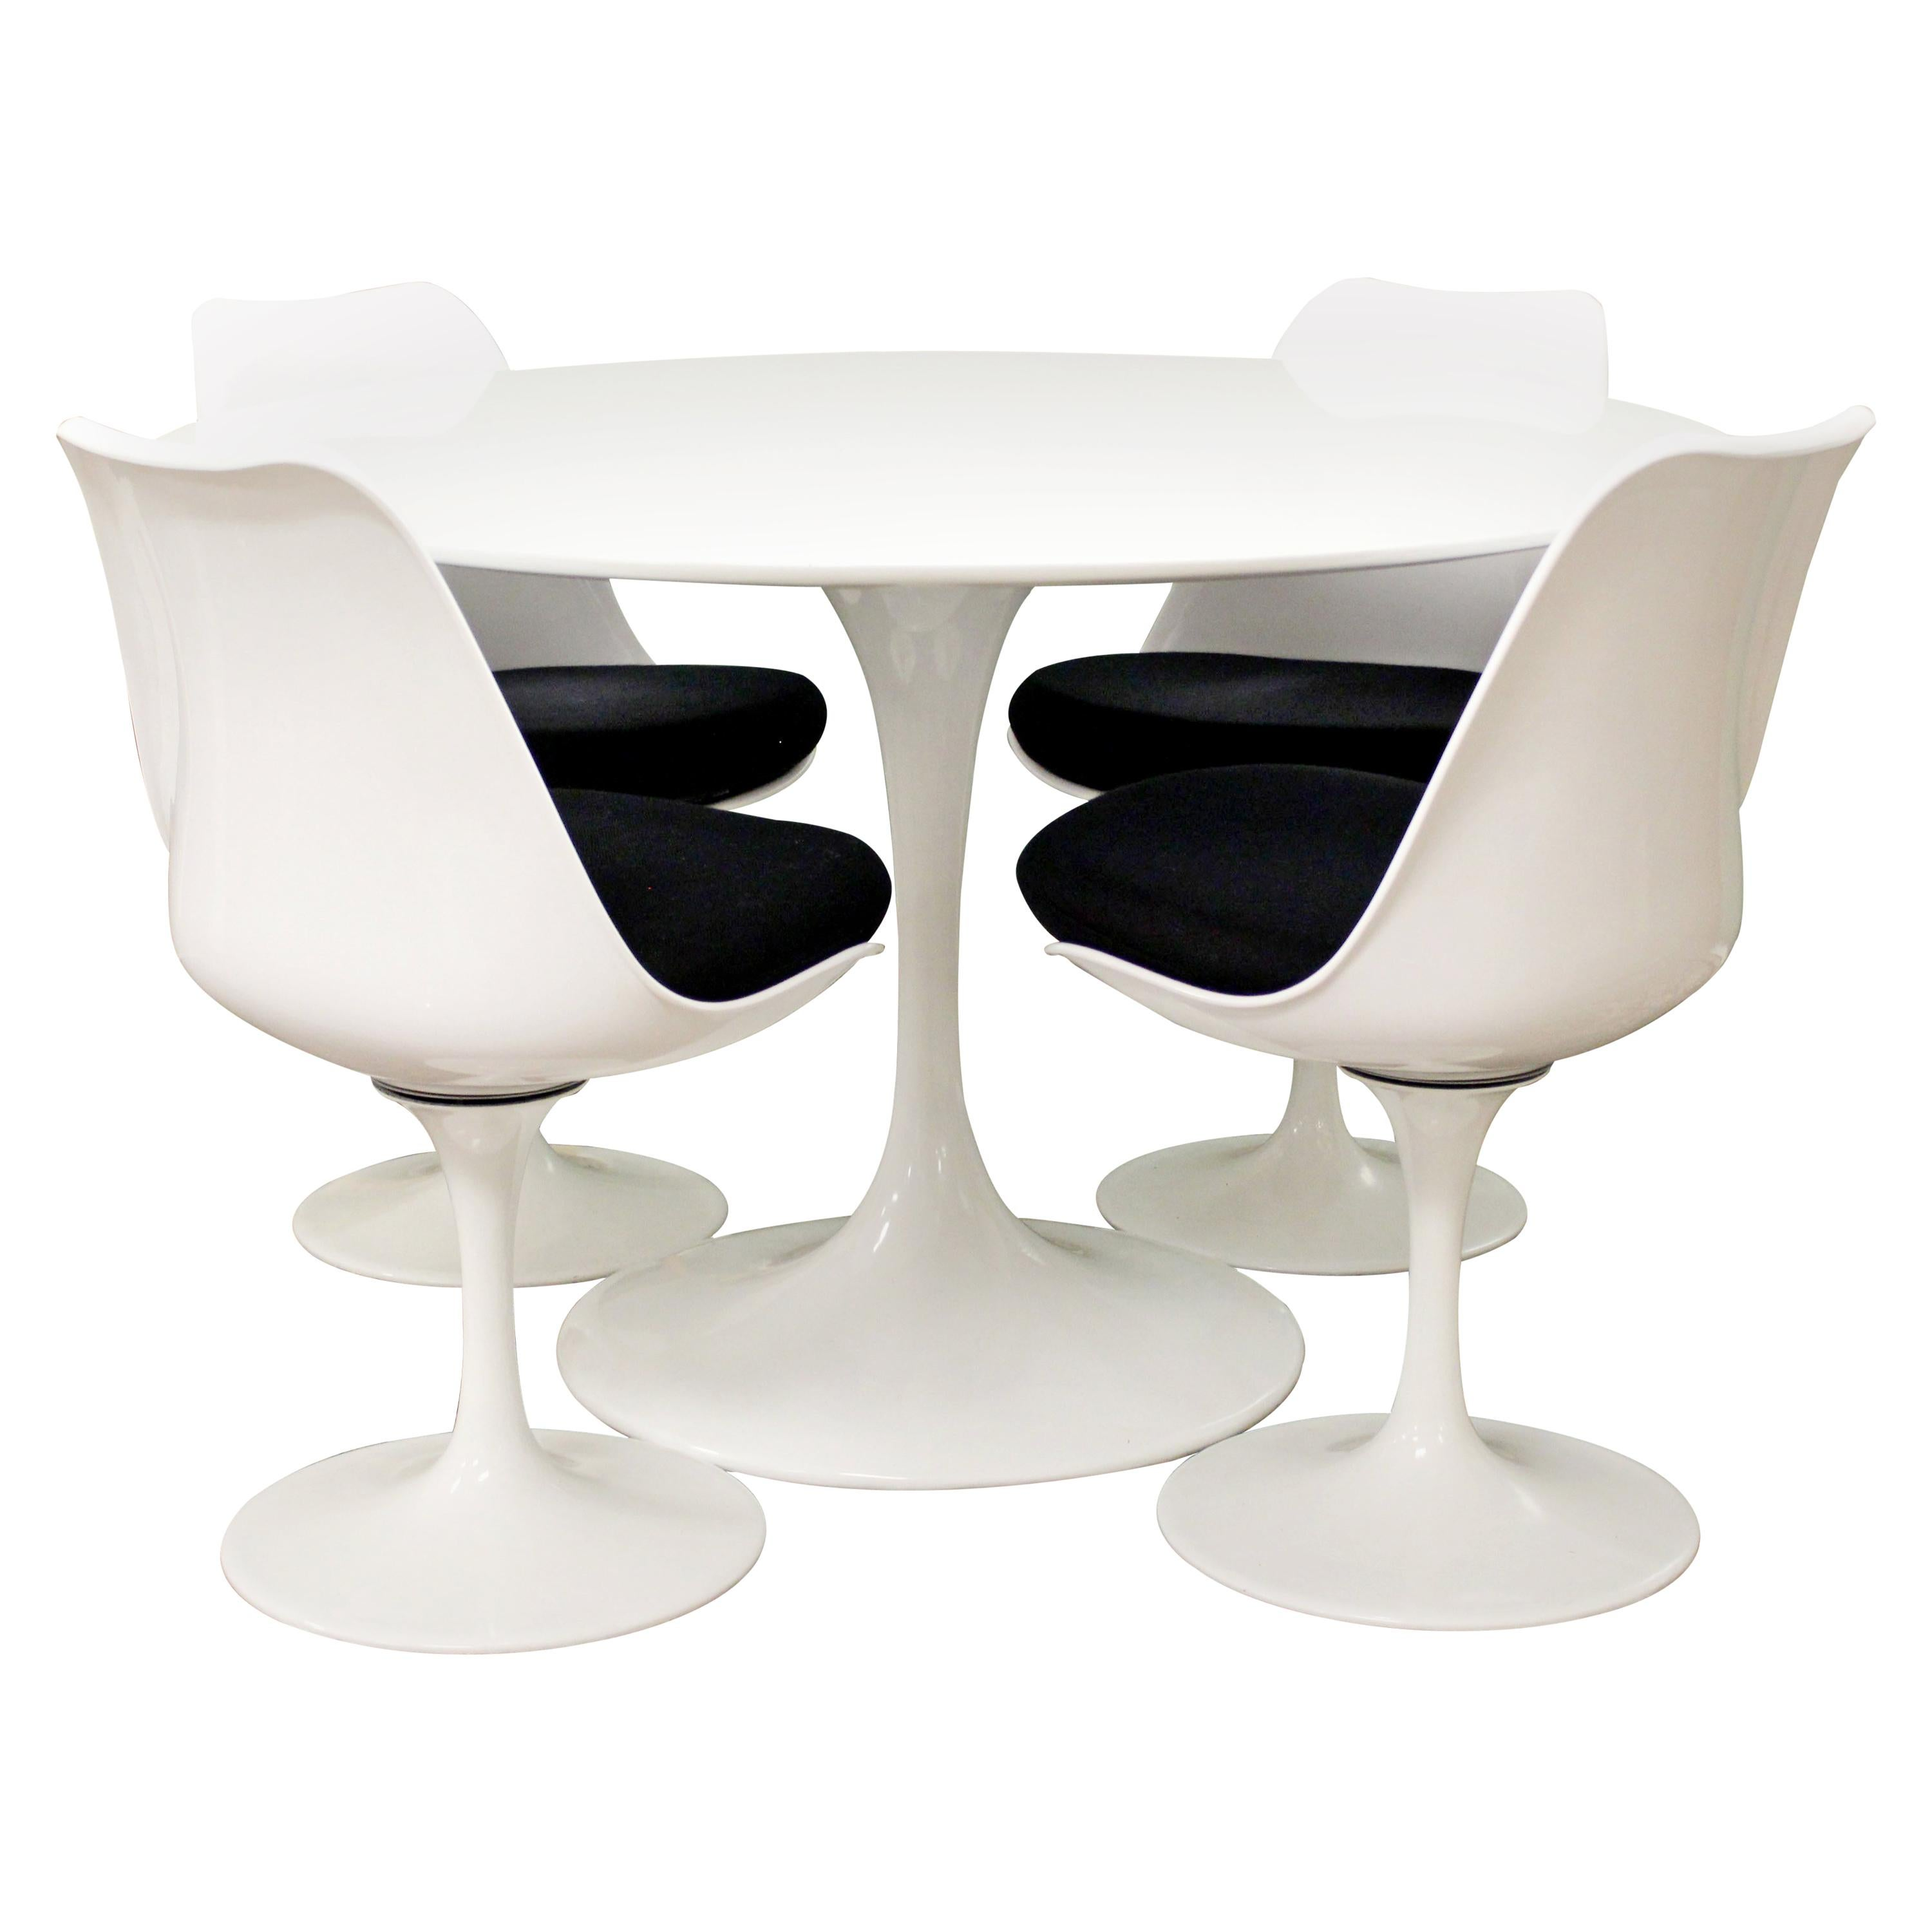 tulip table and chairs tio easy chair saarinen style propeller dining by burke at mid century modern 4 set 1960s